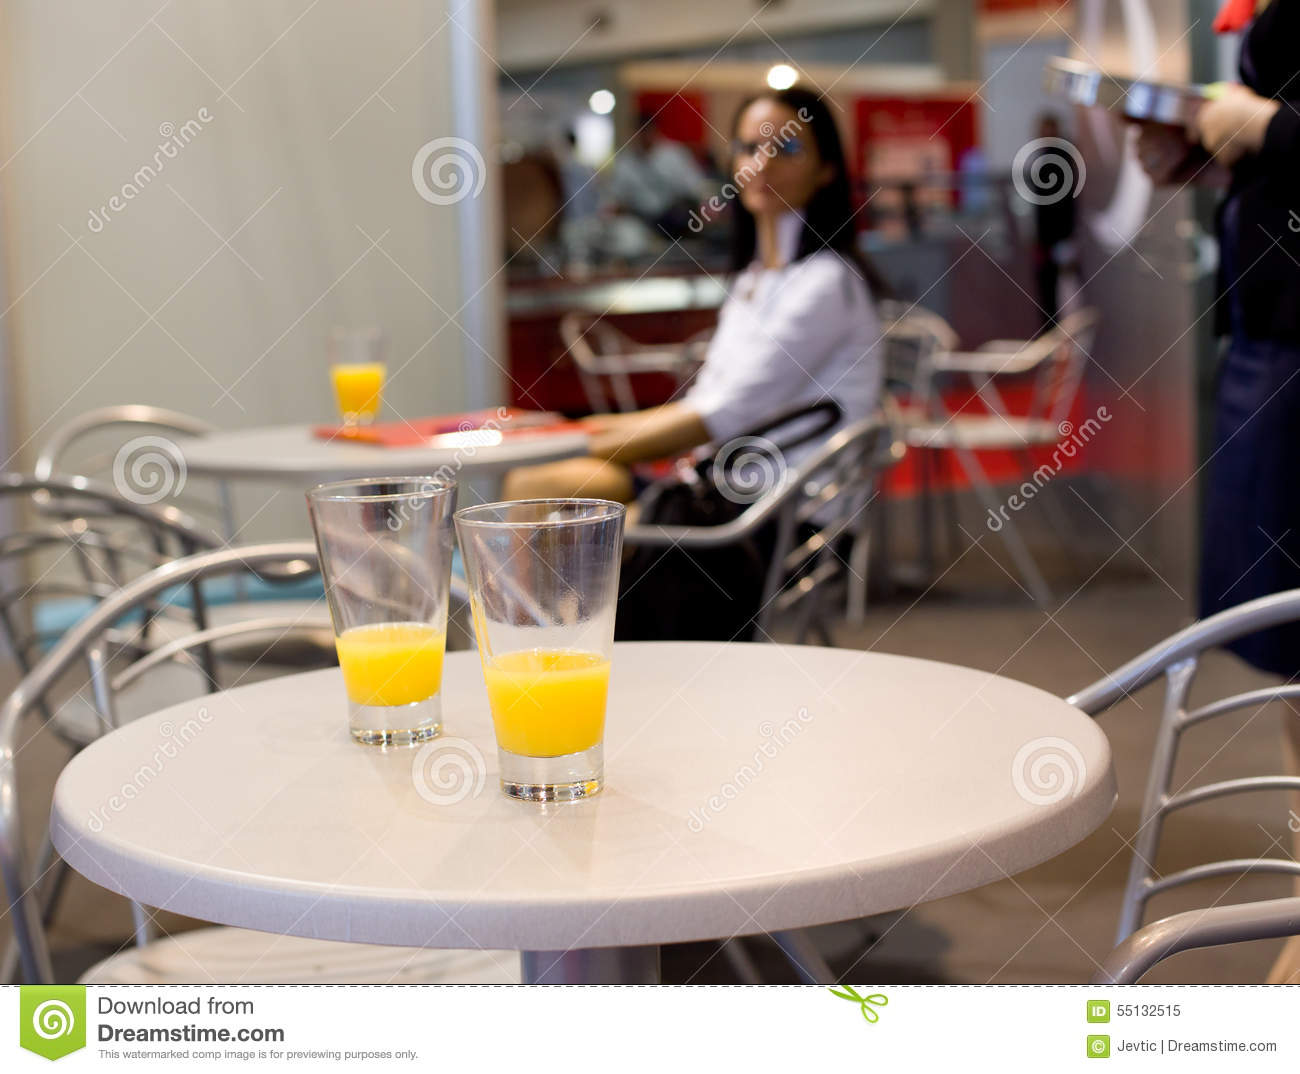 Glasses Of Juice On The Bar Table Stock Image - Image of ...